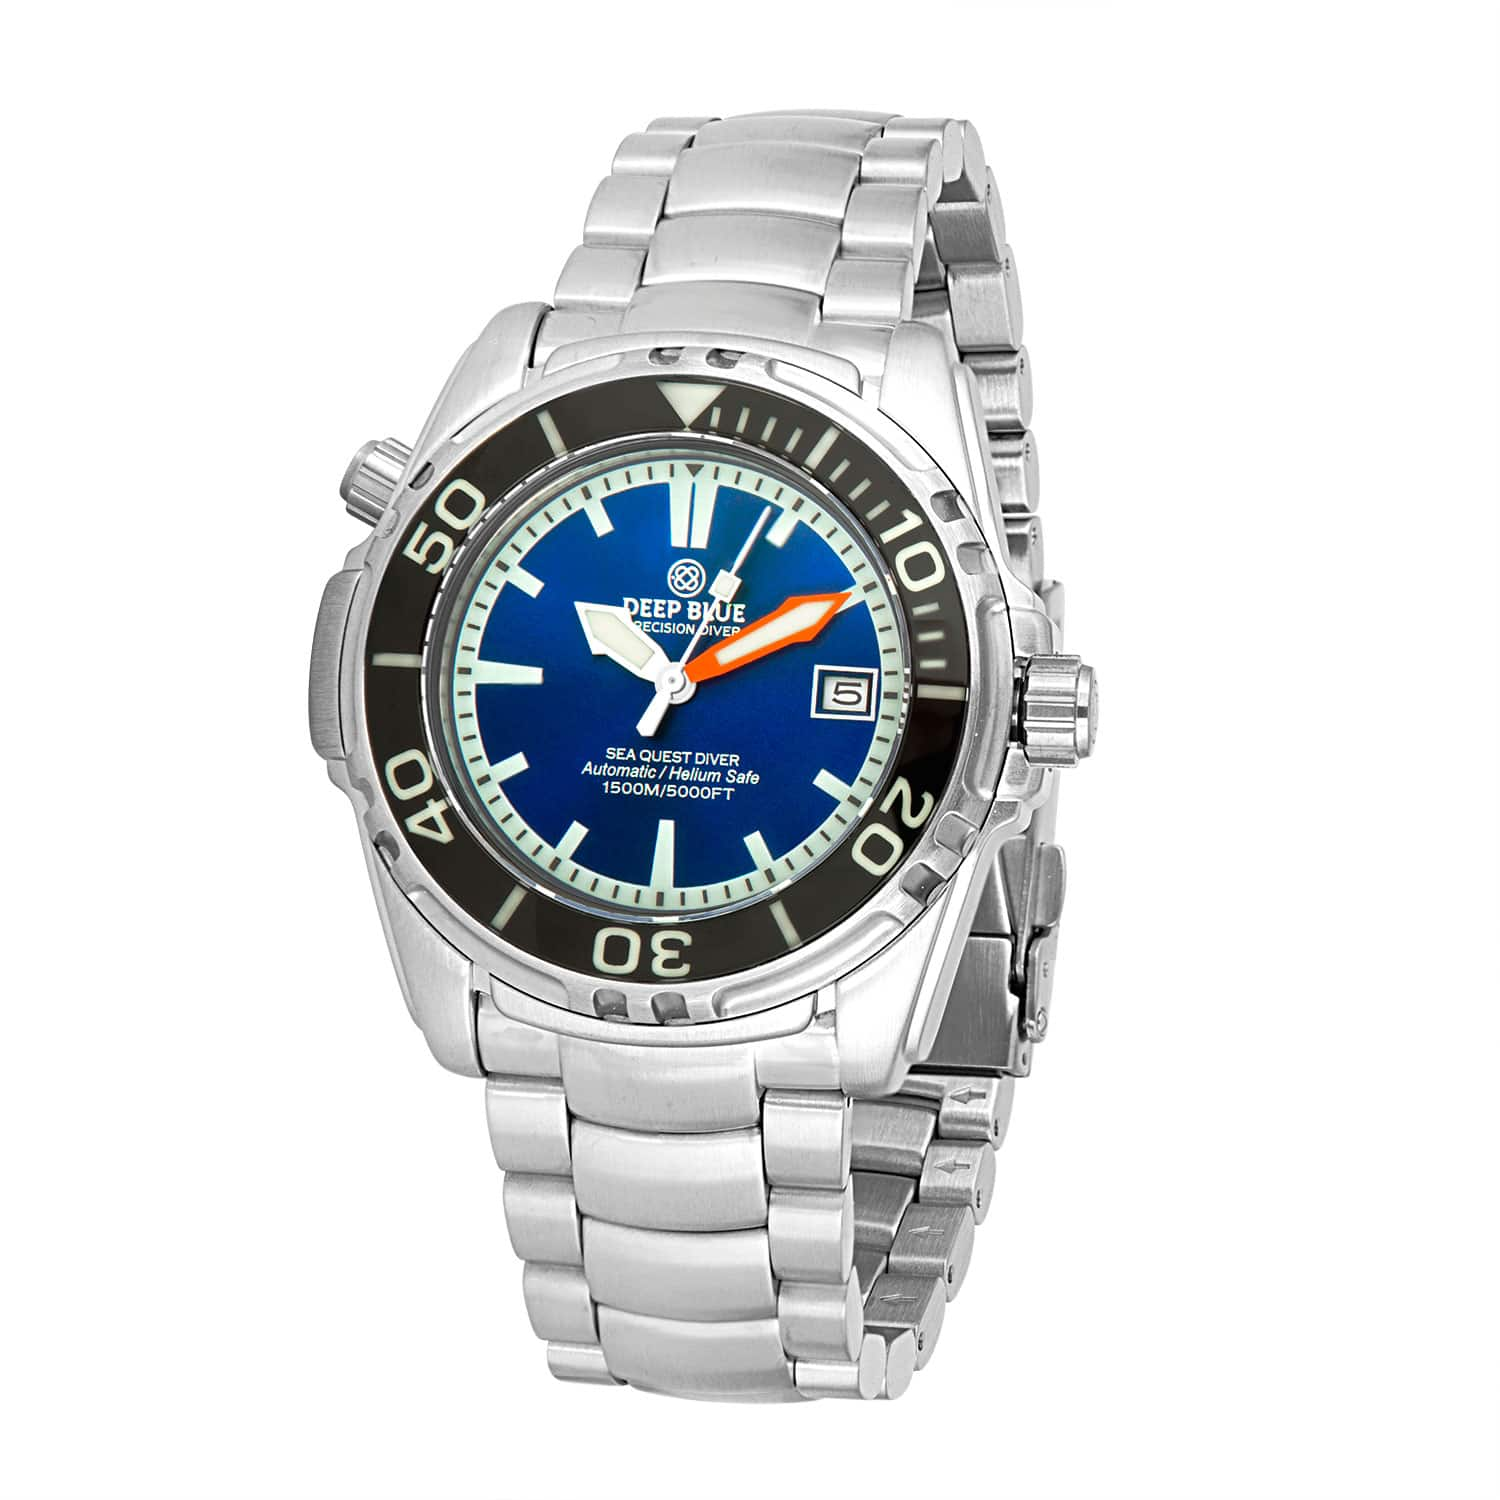 Deep Blue Men's Sea Quest Automatic Diver 1500M Stainless Steel Watch (various styles) $279 + Free Shipping